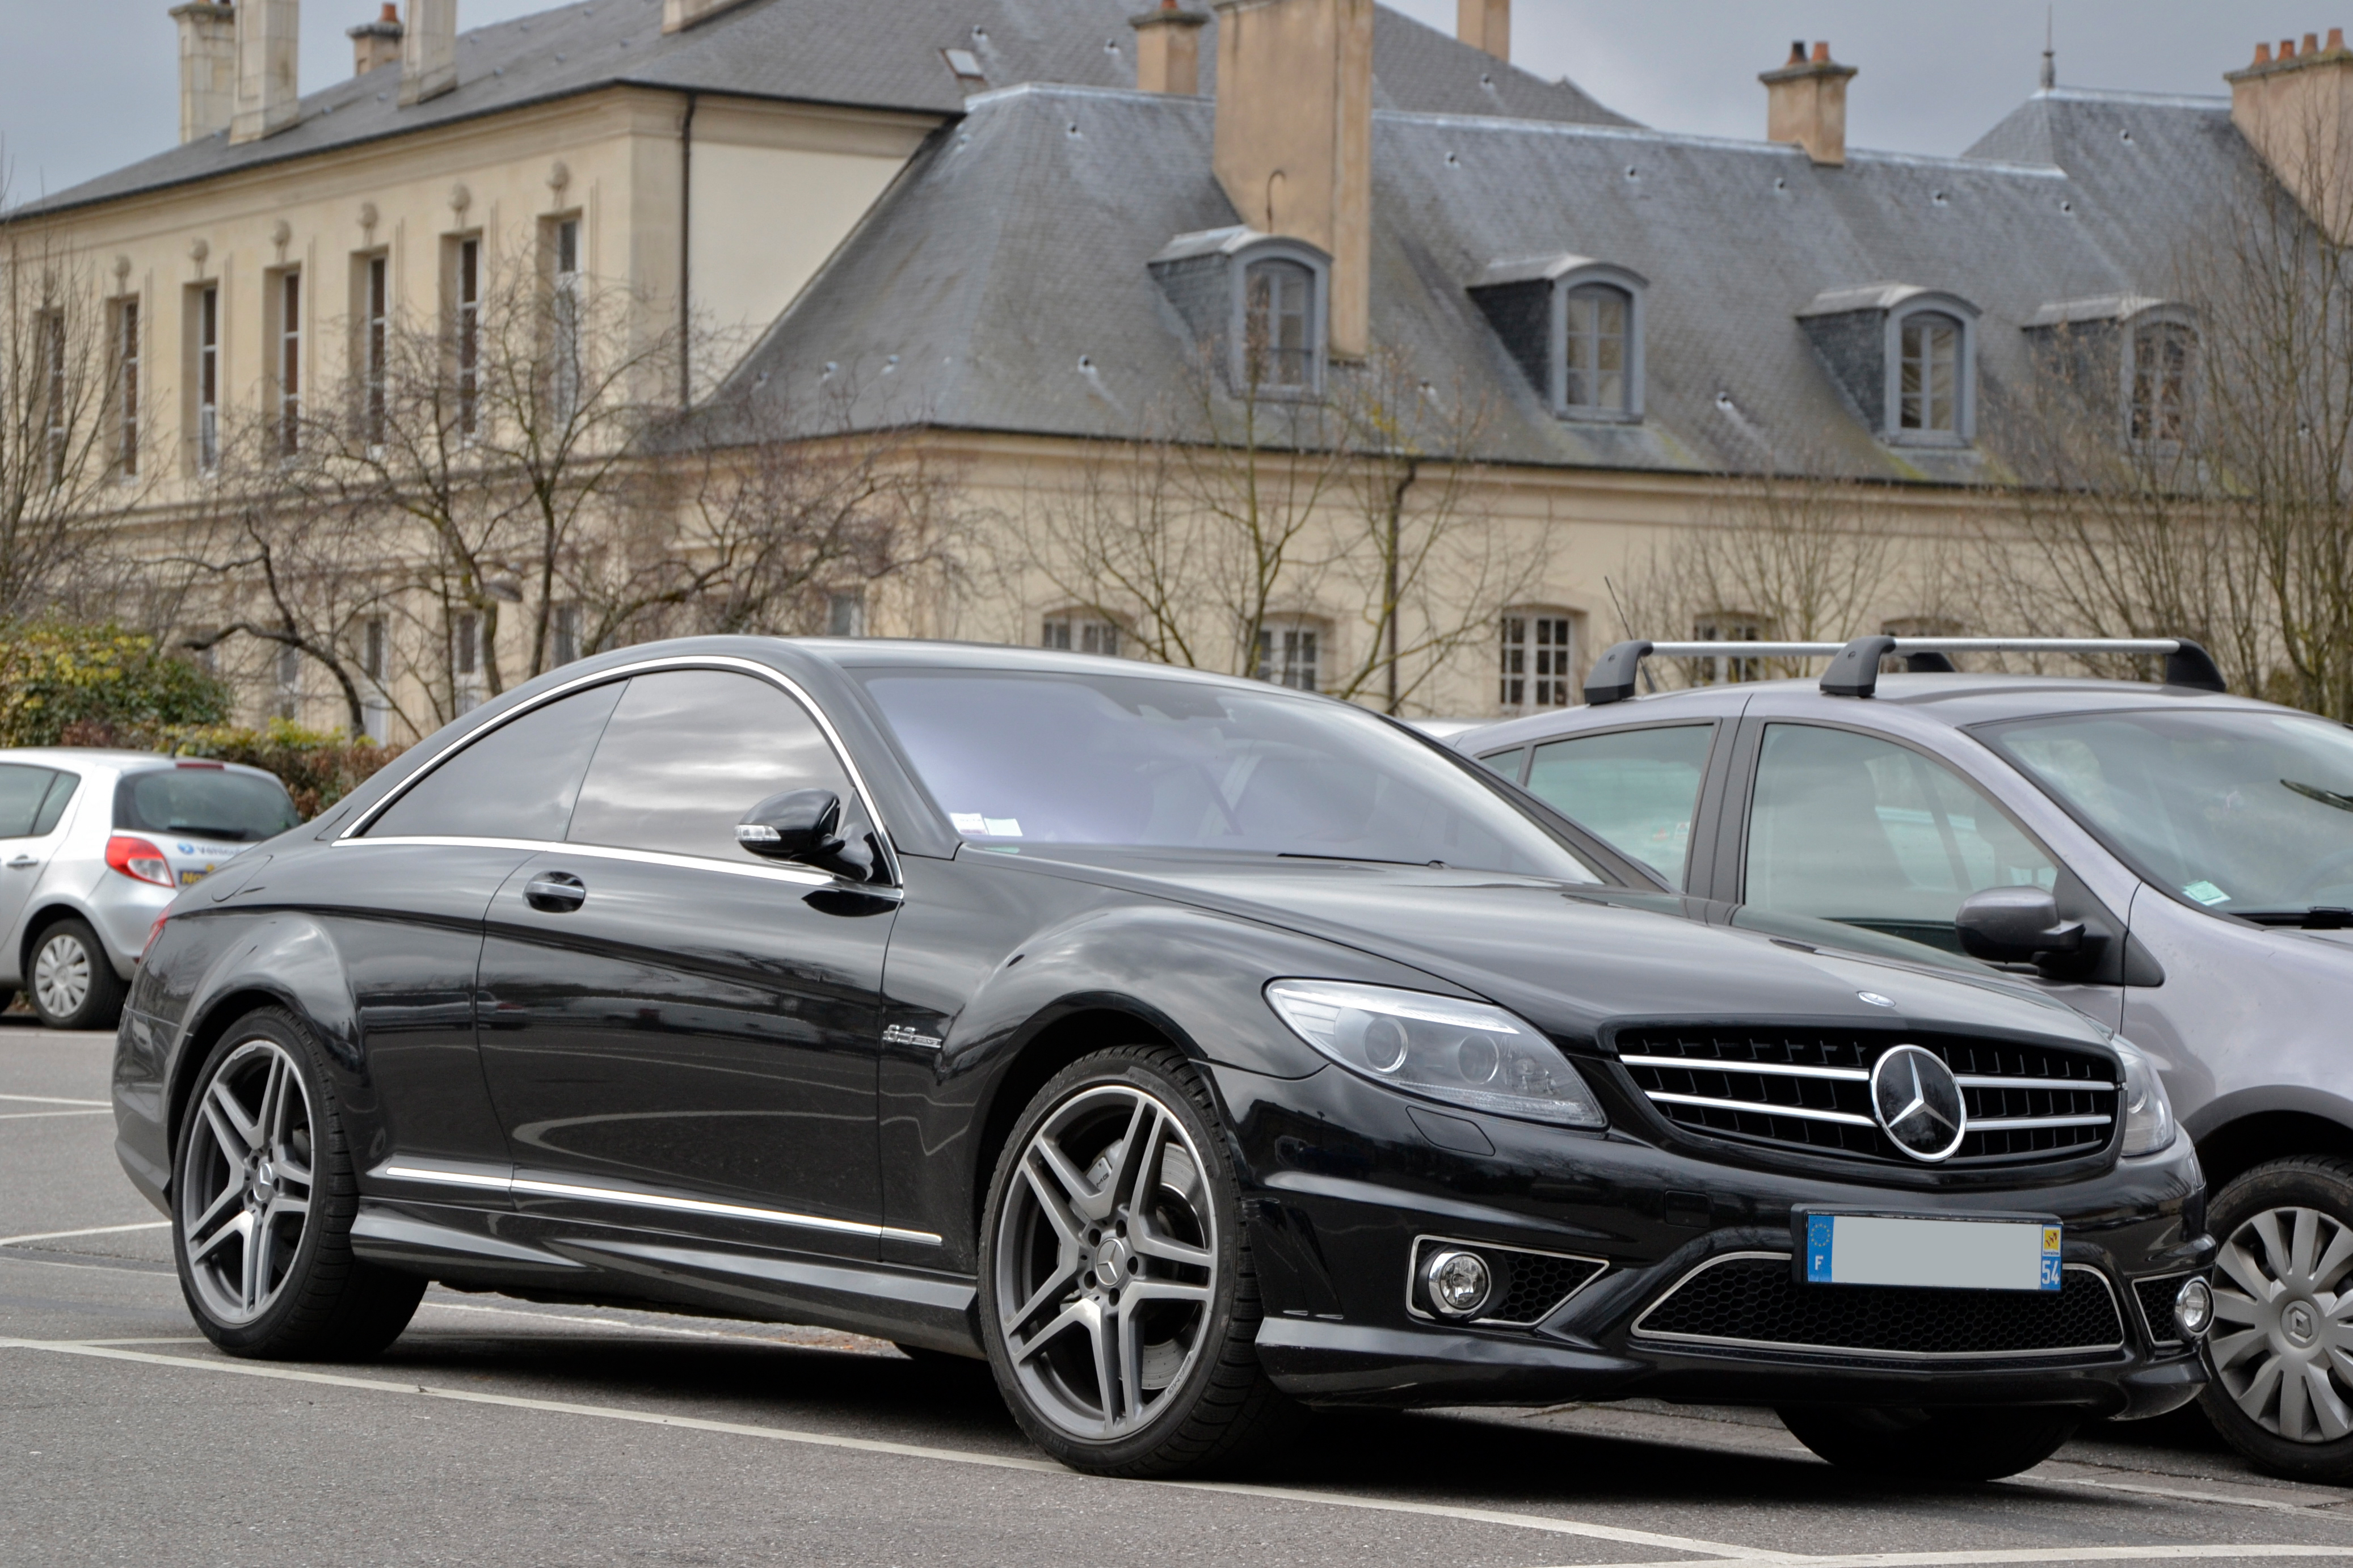 Image gallery 2013 cl63 amg for 2011 mercedes benz cl63 amg